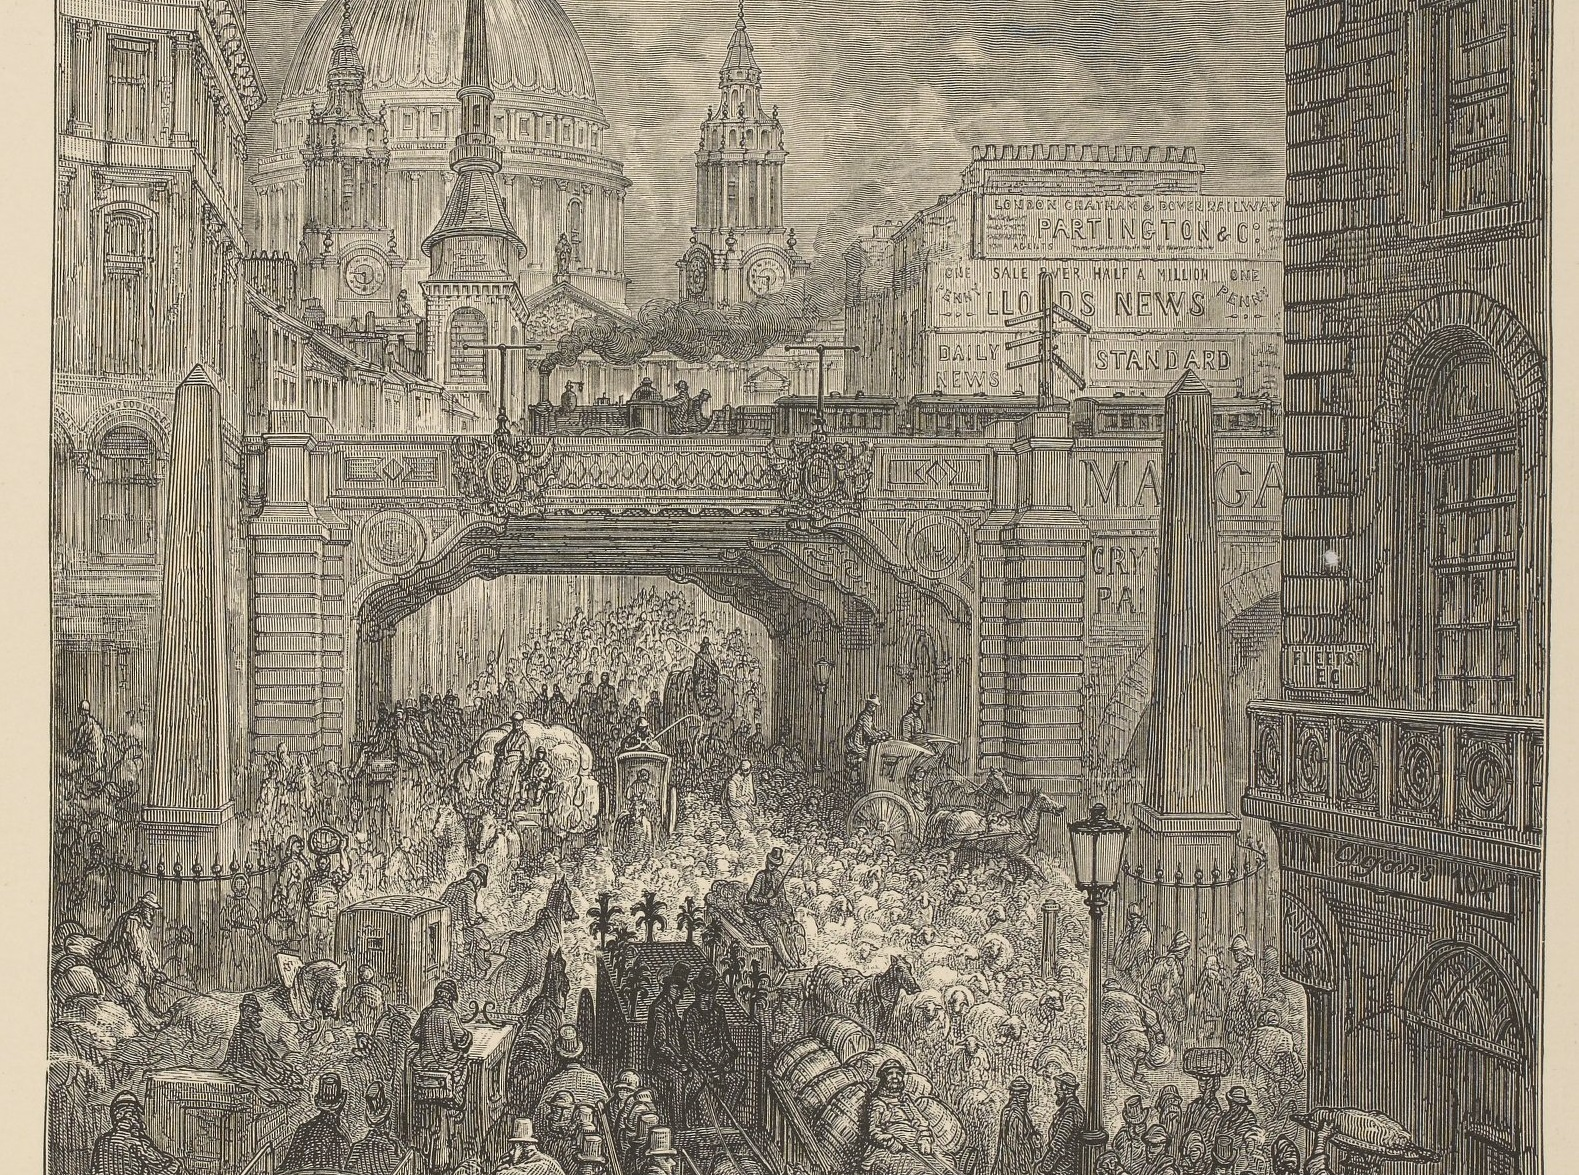 Le londres fantastique de gustave dor presse retronews bnf for Chambre de commerce francaise londres